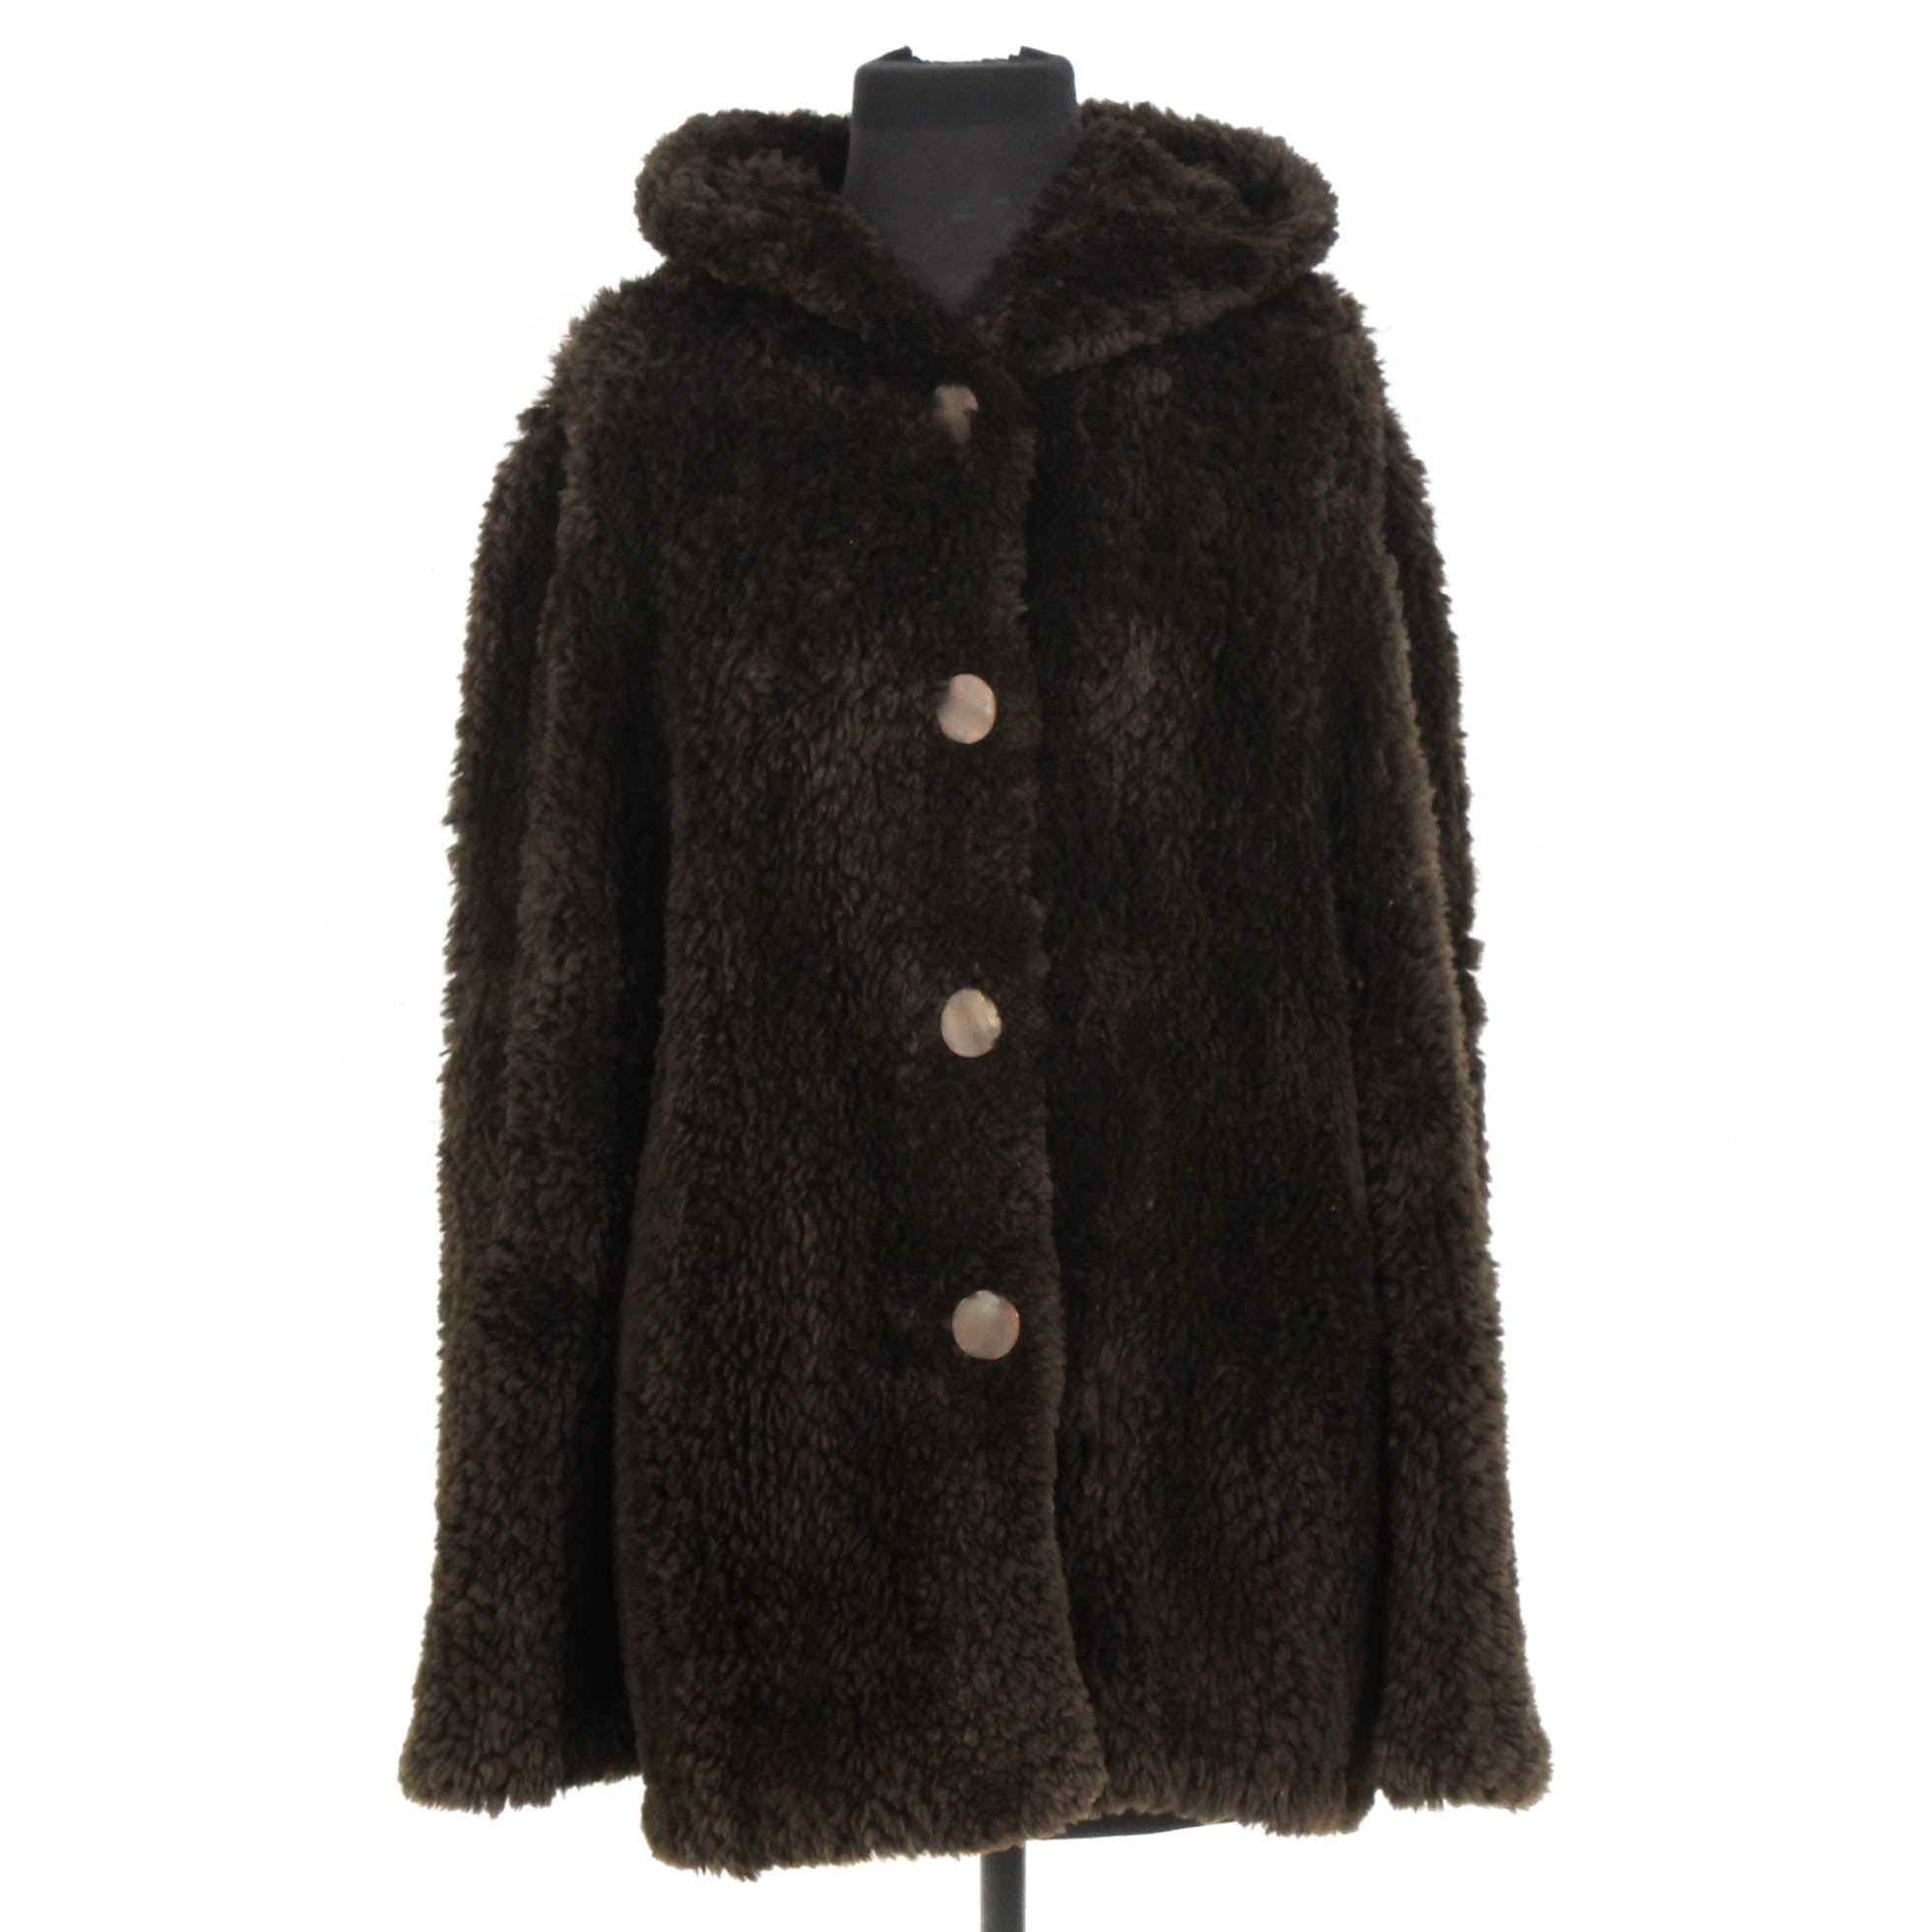 Knitted Brown Shearling Coat with Hood